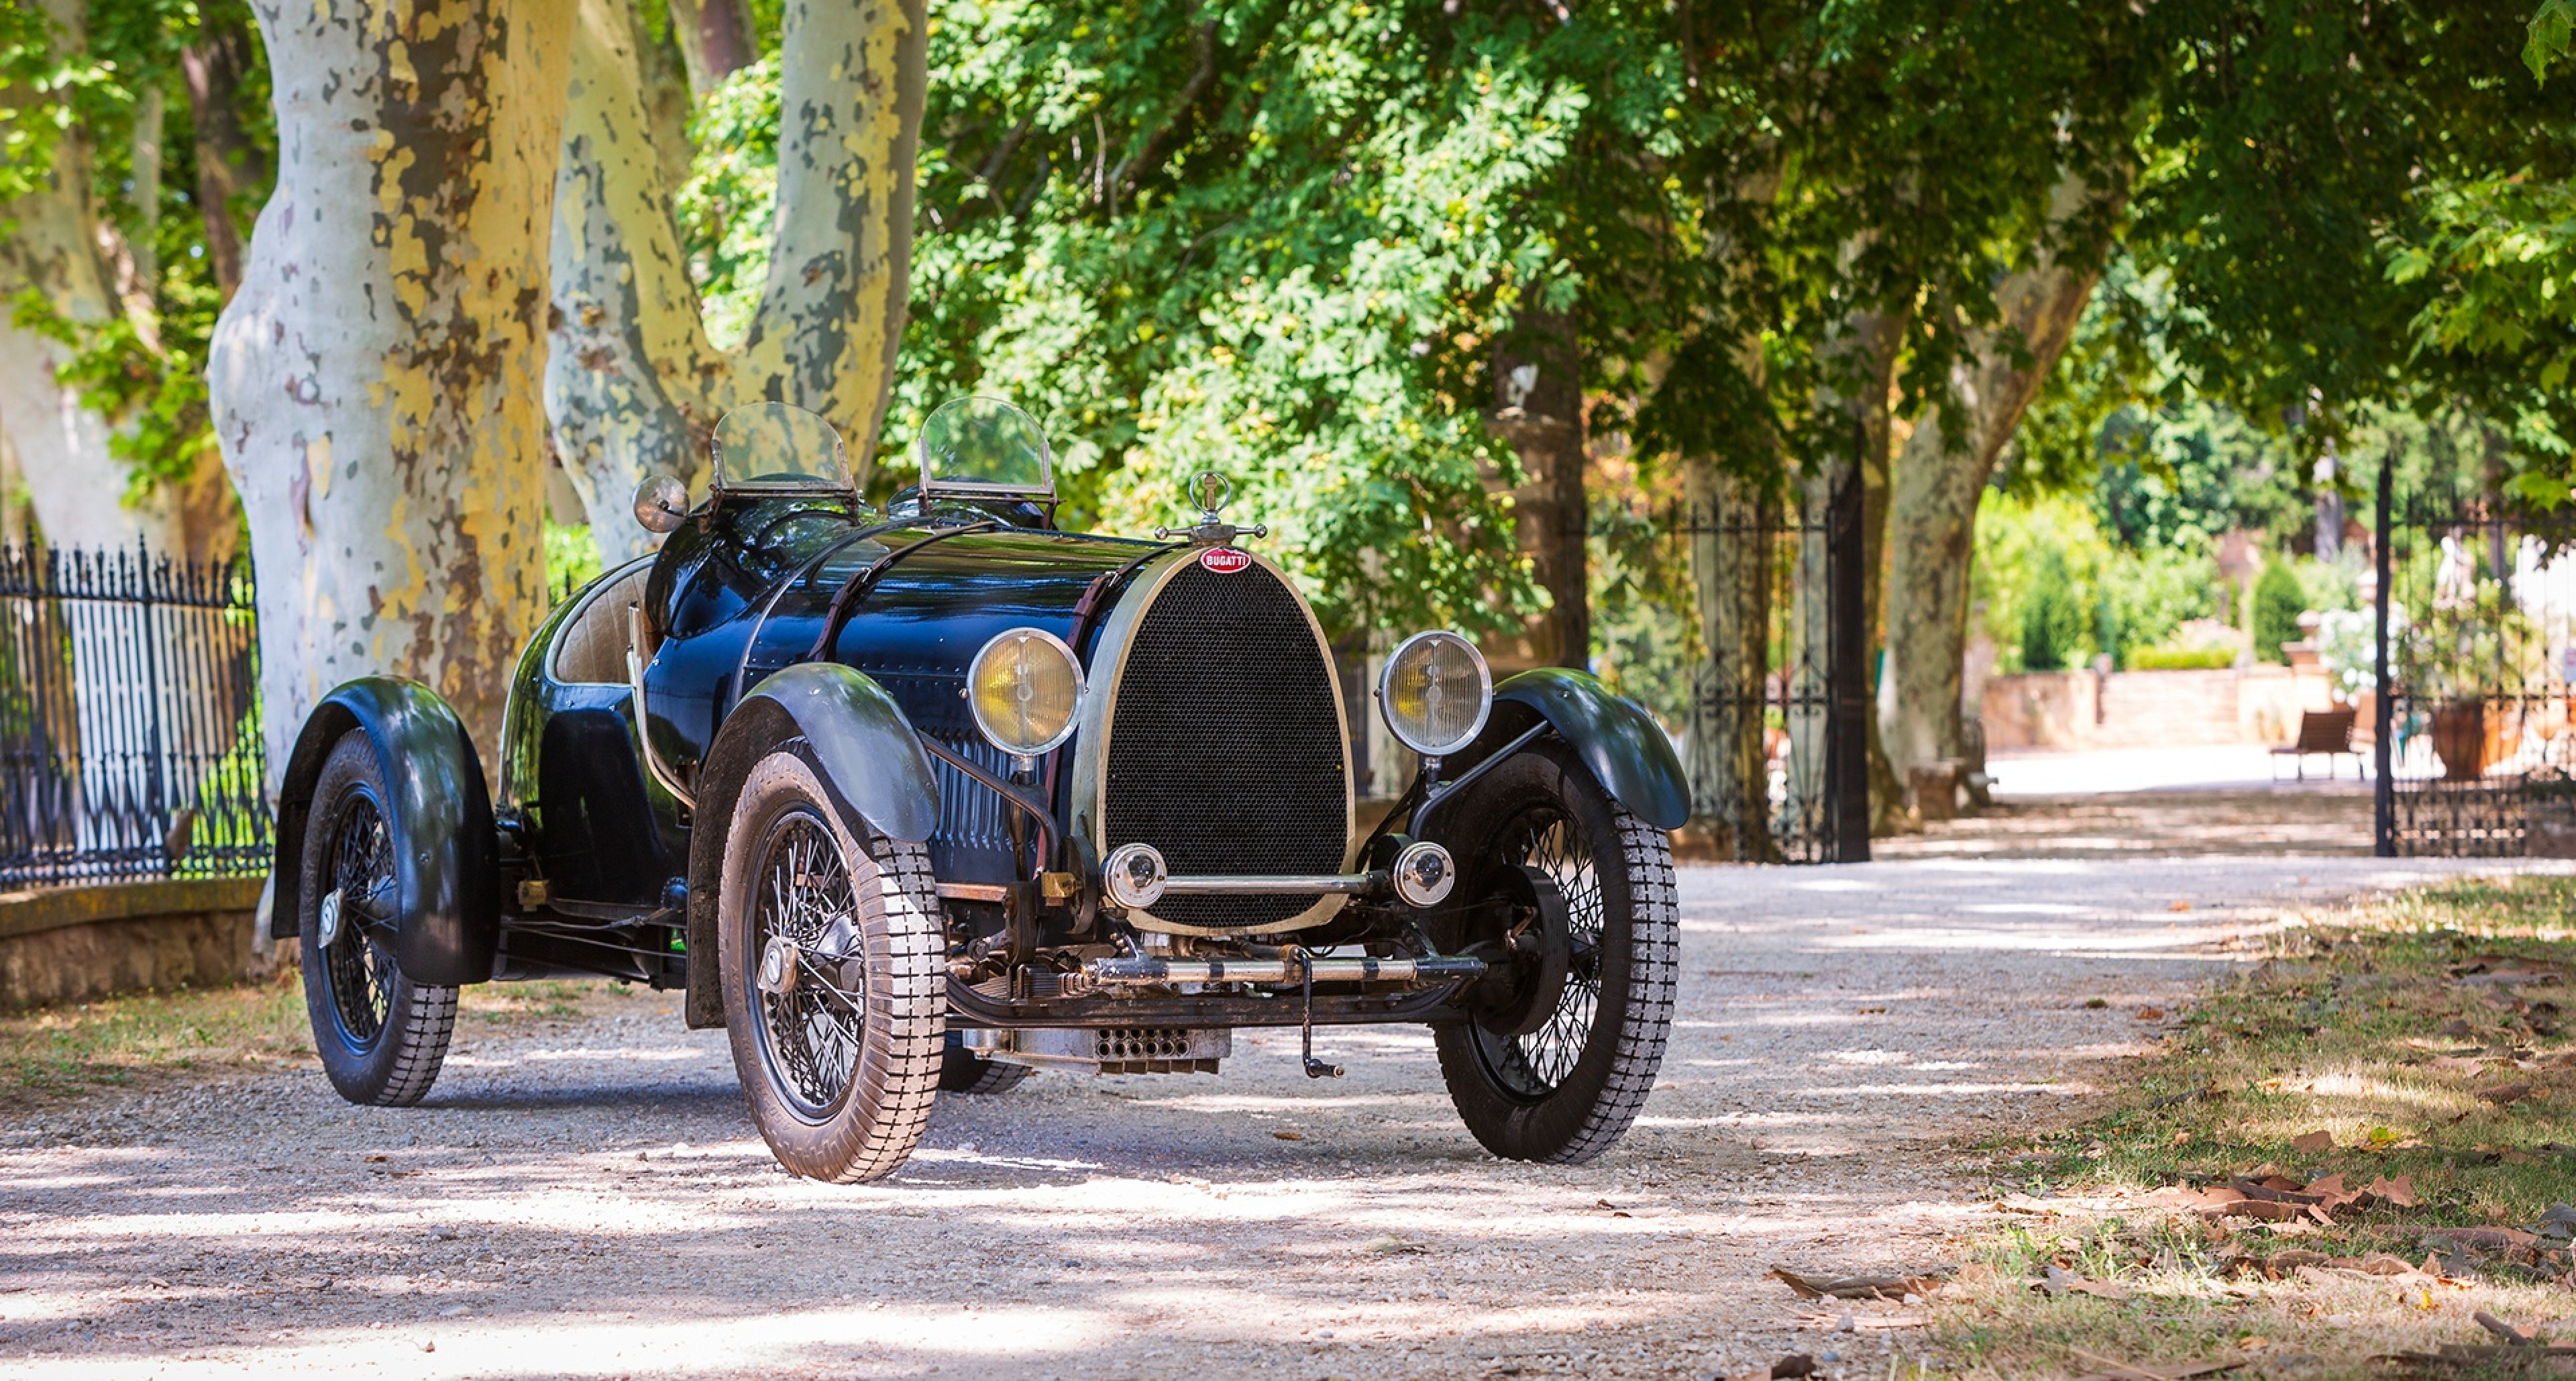 Grasp The Magic Of Ettore Bugatti With This Beautifully Original